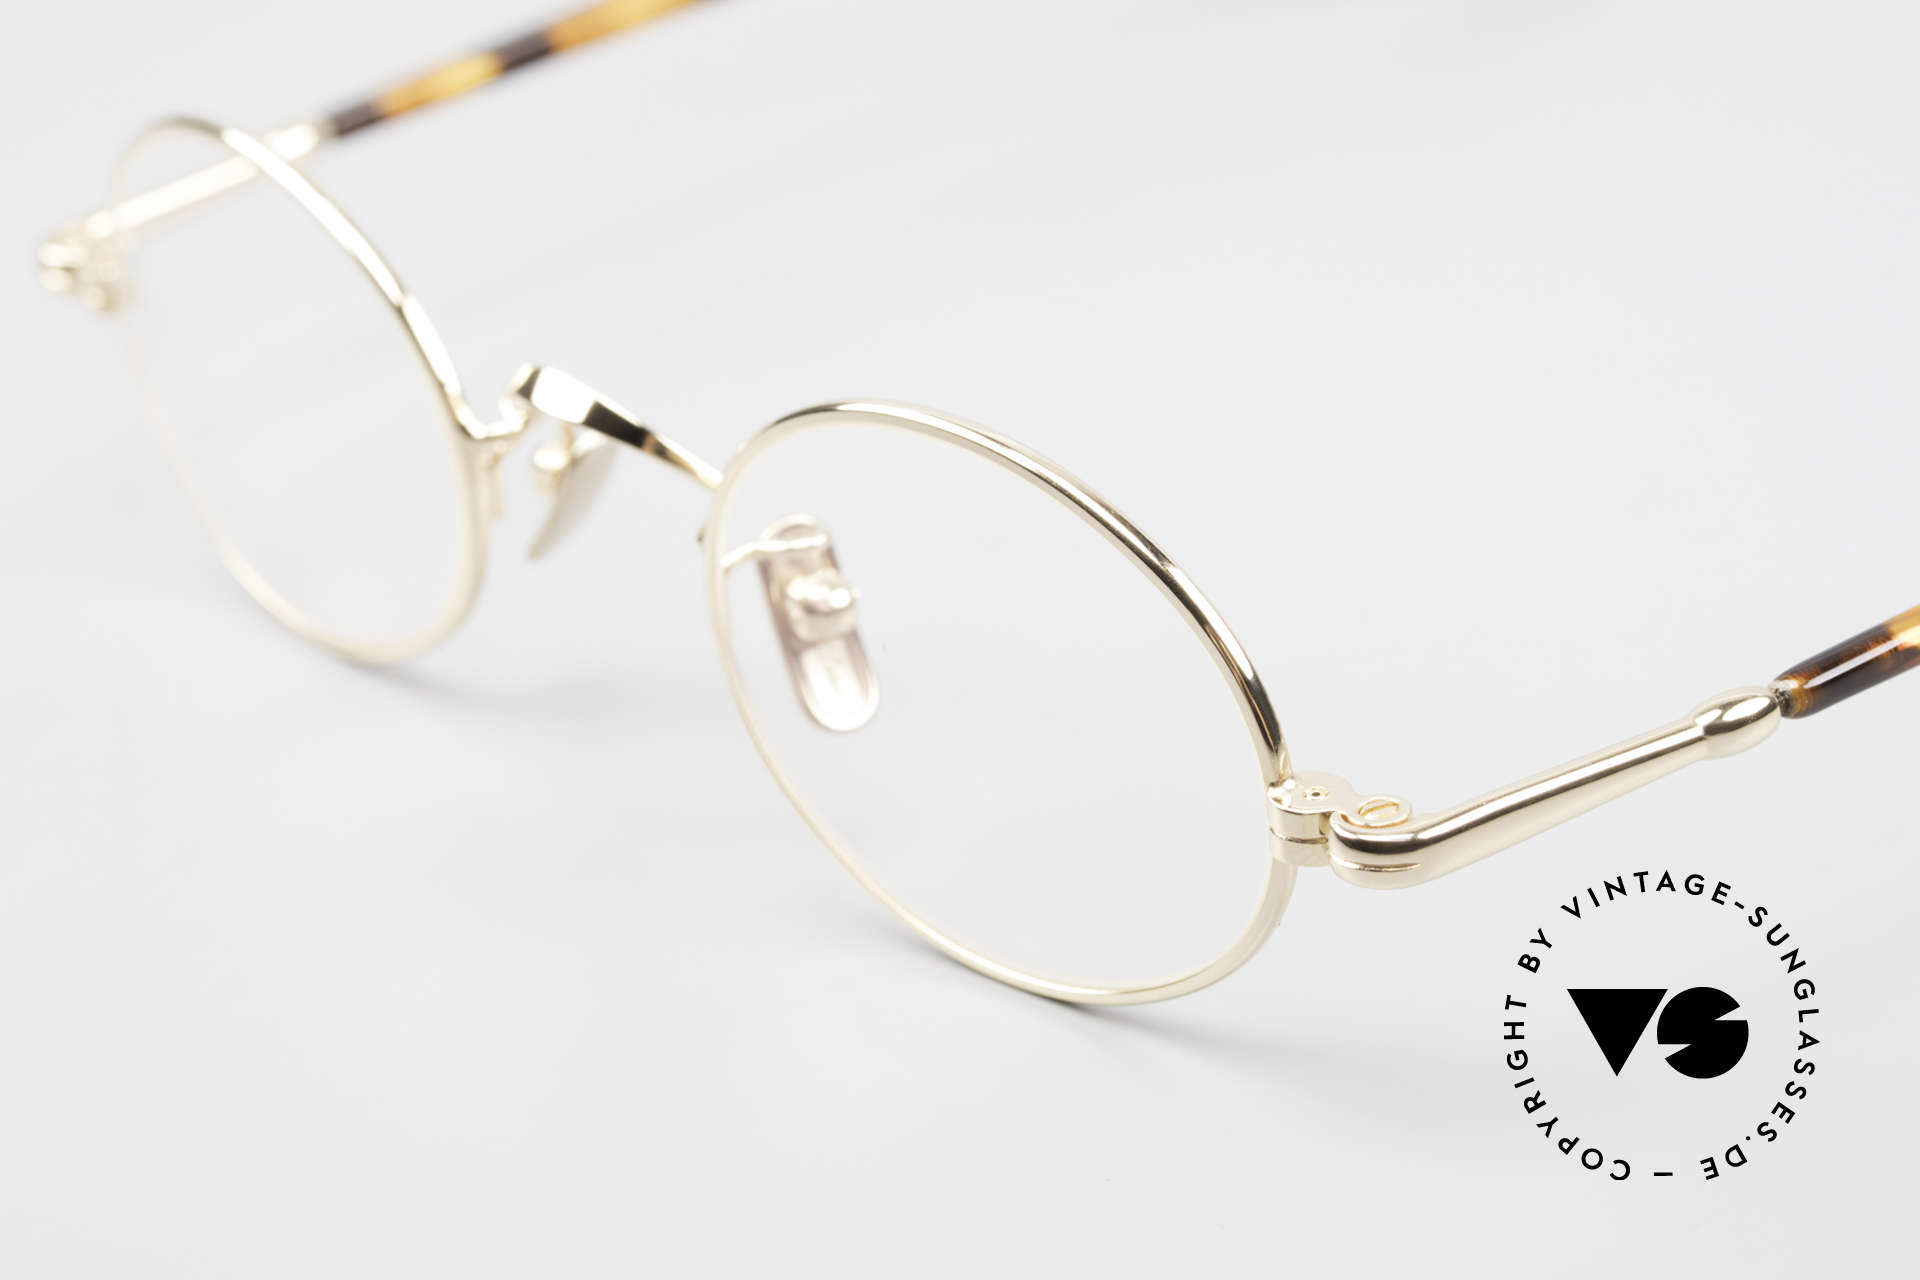 Lunor VA 100 Oval Lunor Glasses Gold Plated, top-notch oval frame design, timeless & titanium pads, Made for Men and Women